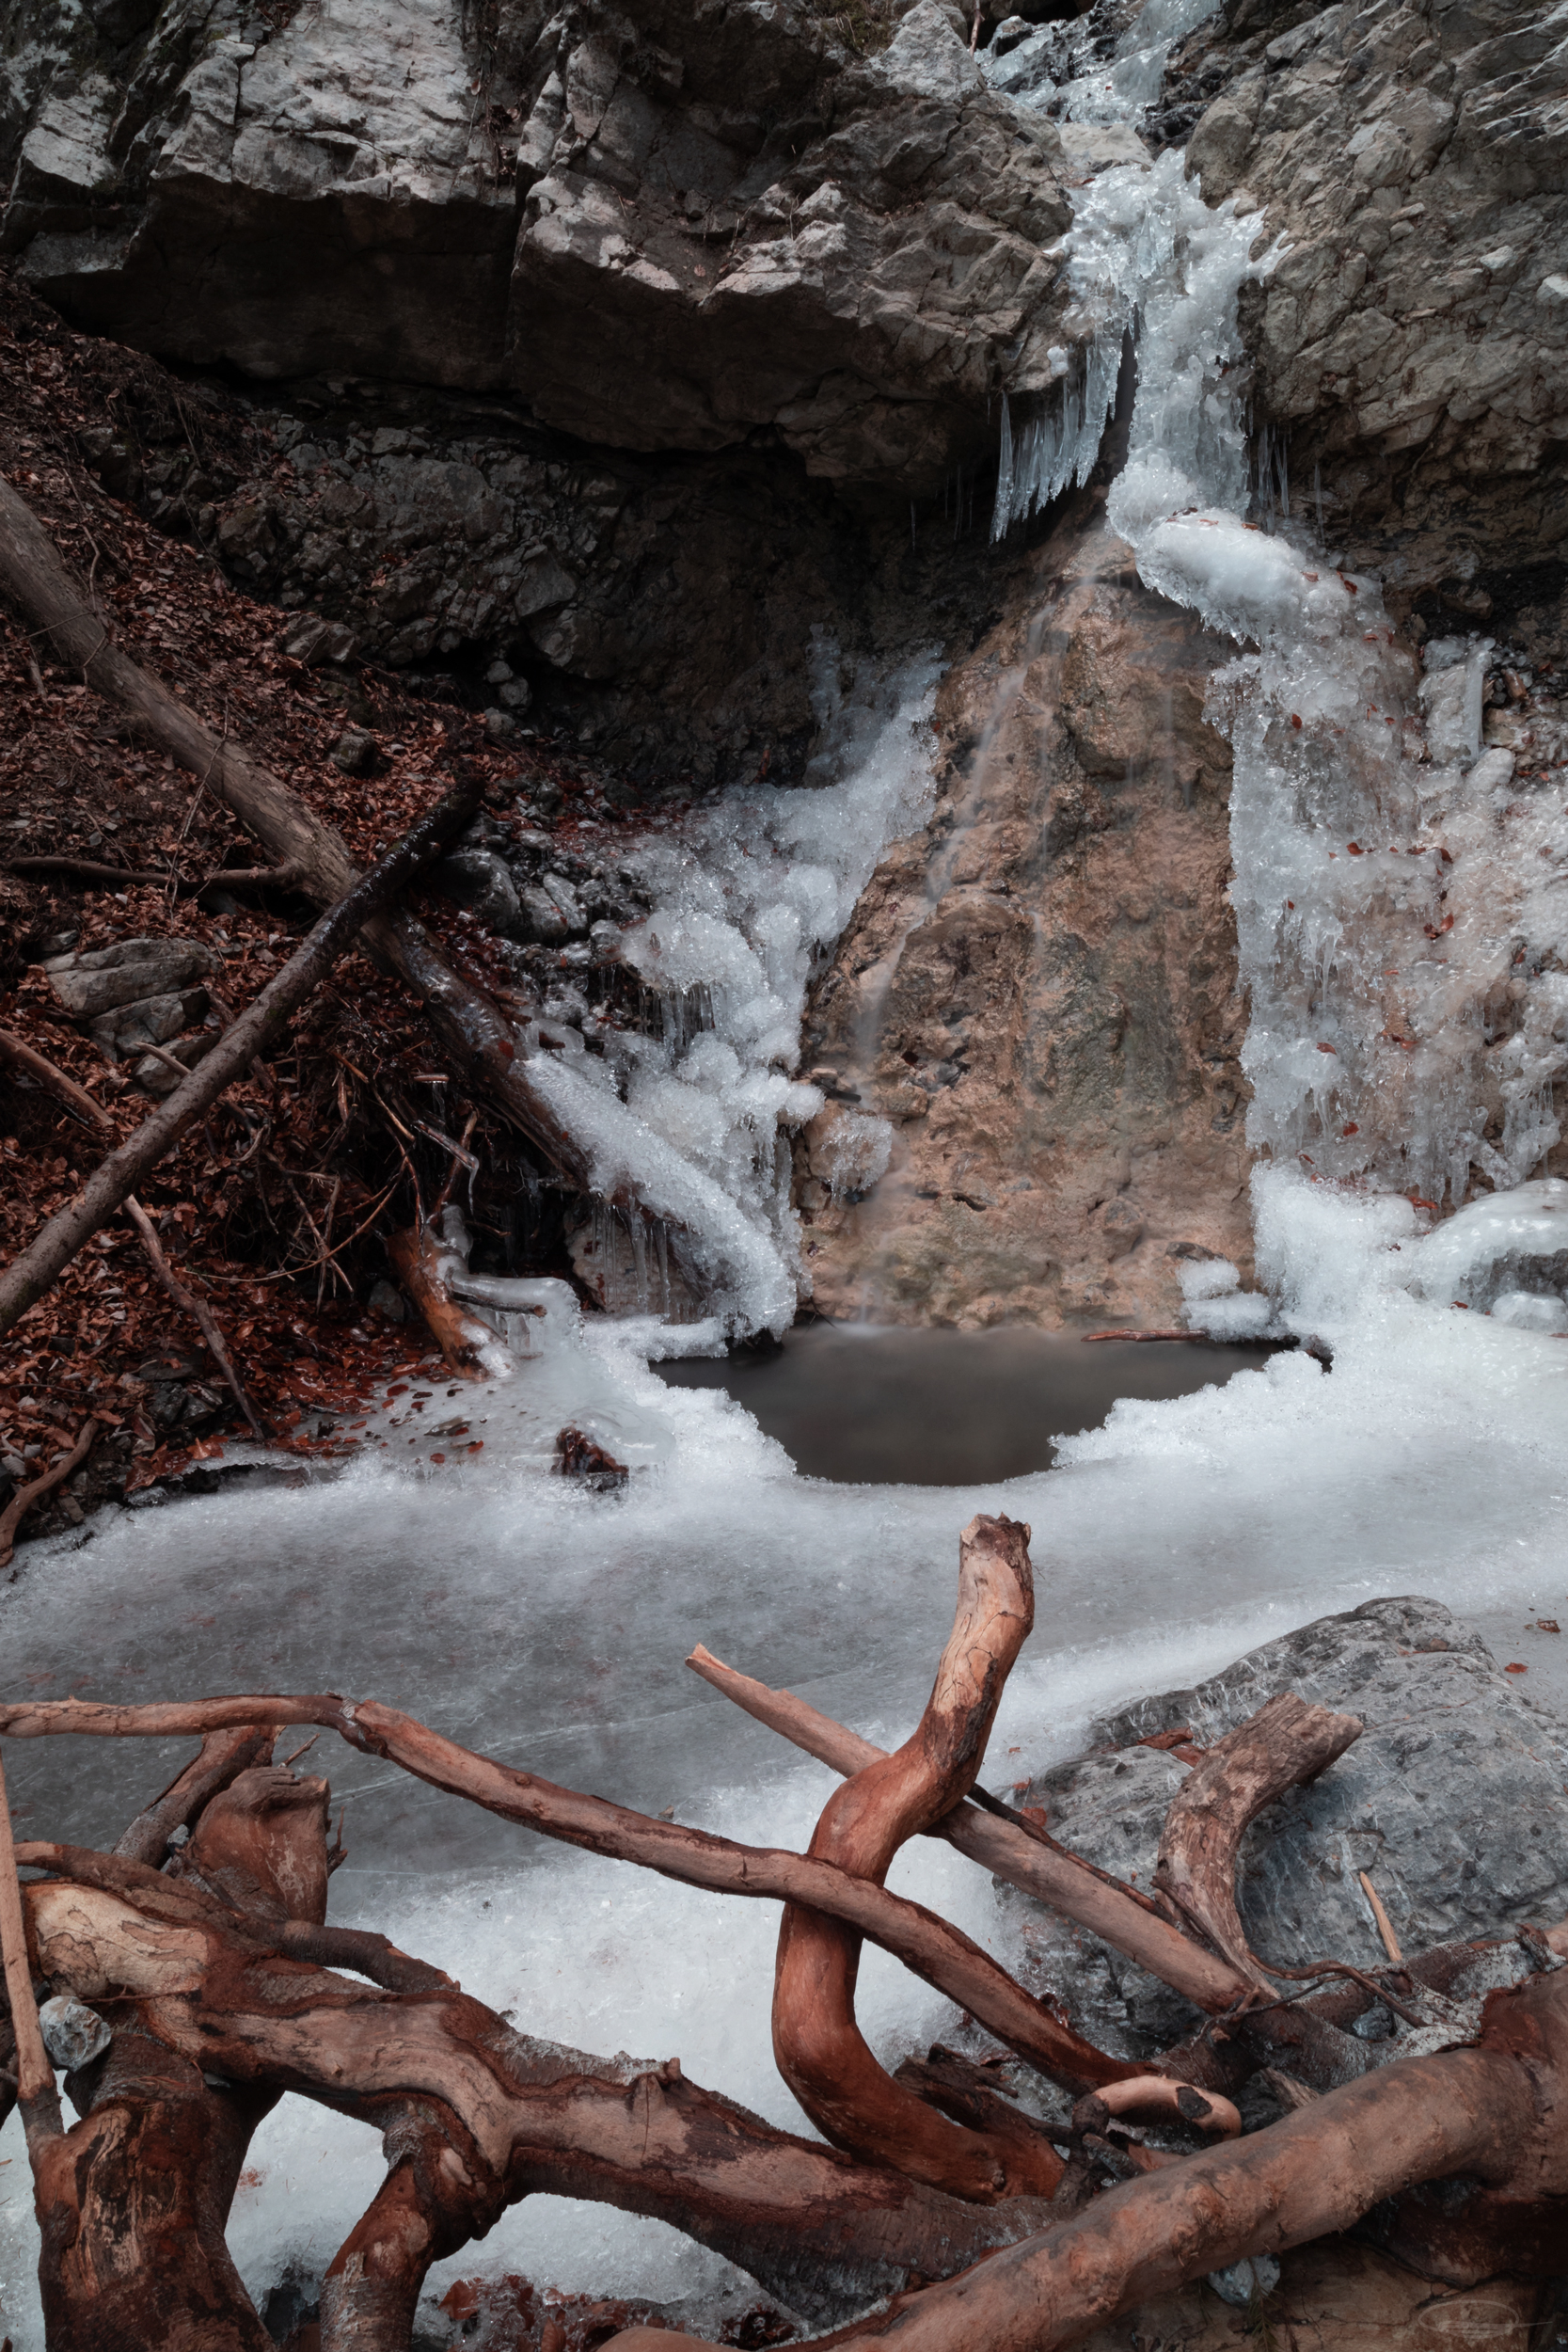 Impressions from the Woods, icy brook and water falls, leaves and more.